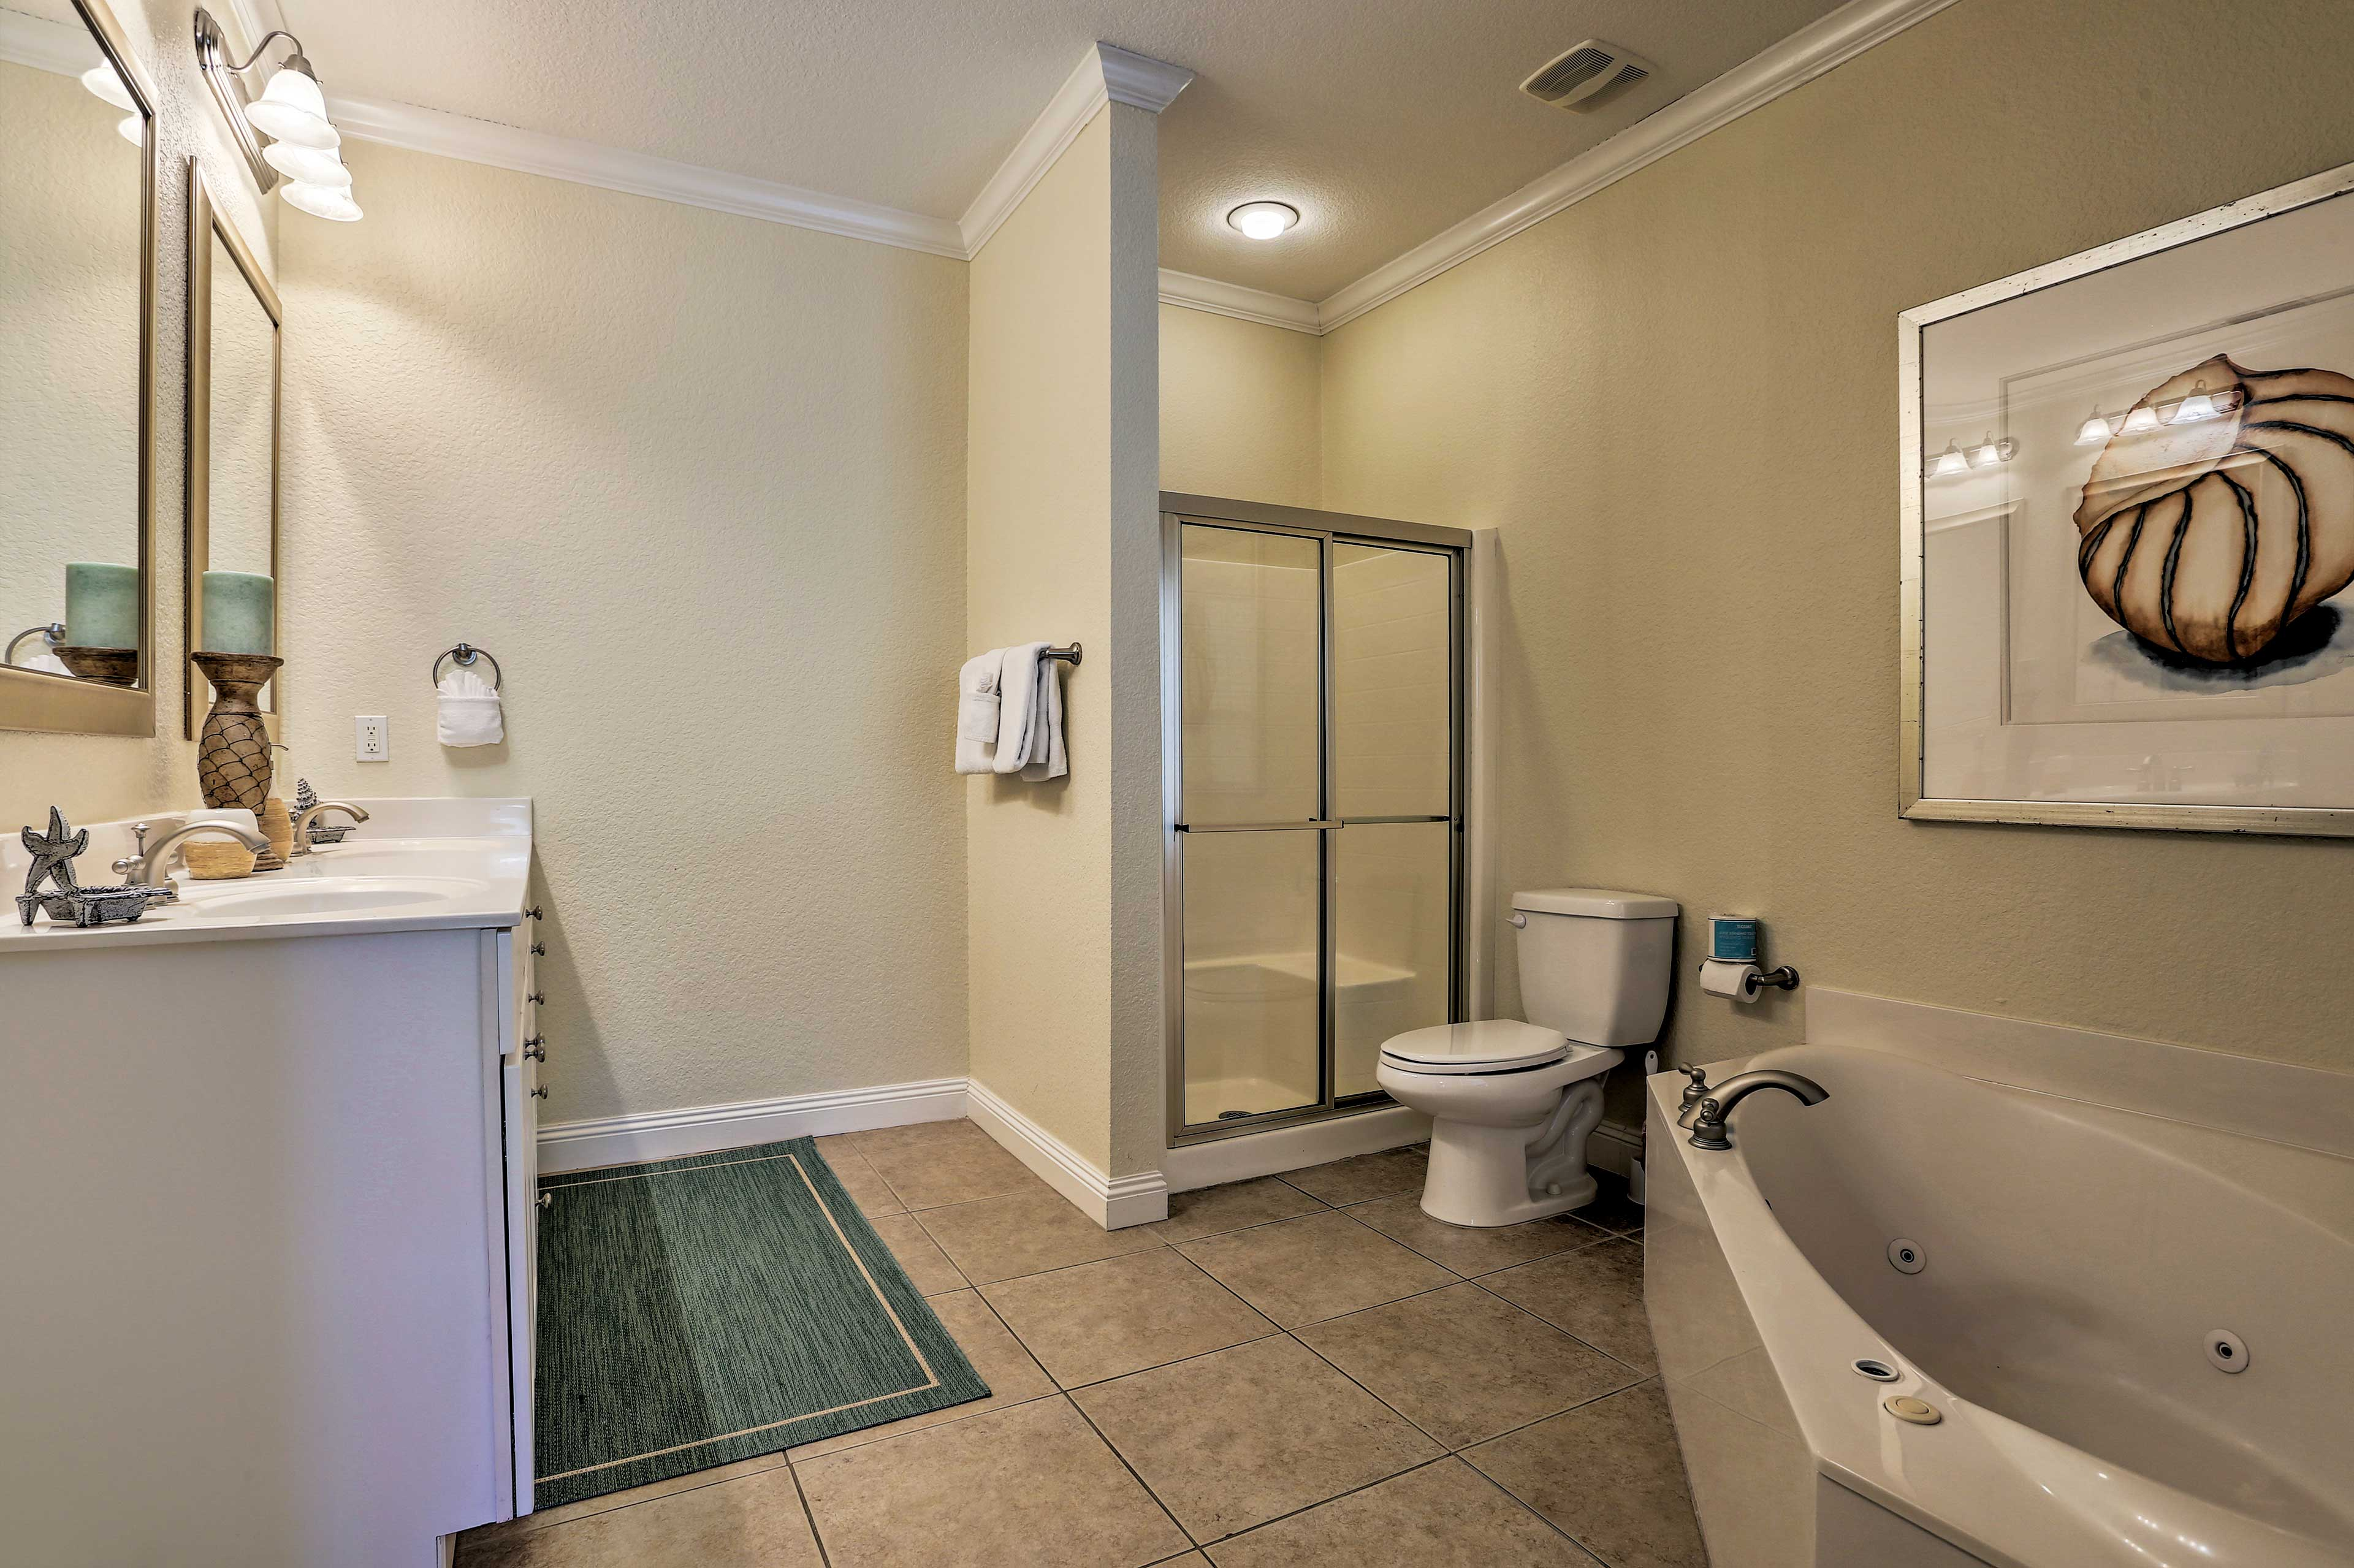 The master en-suite bathroom offers a walk-in shower and jetted tub.